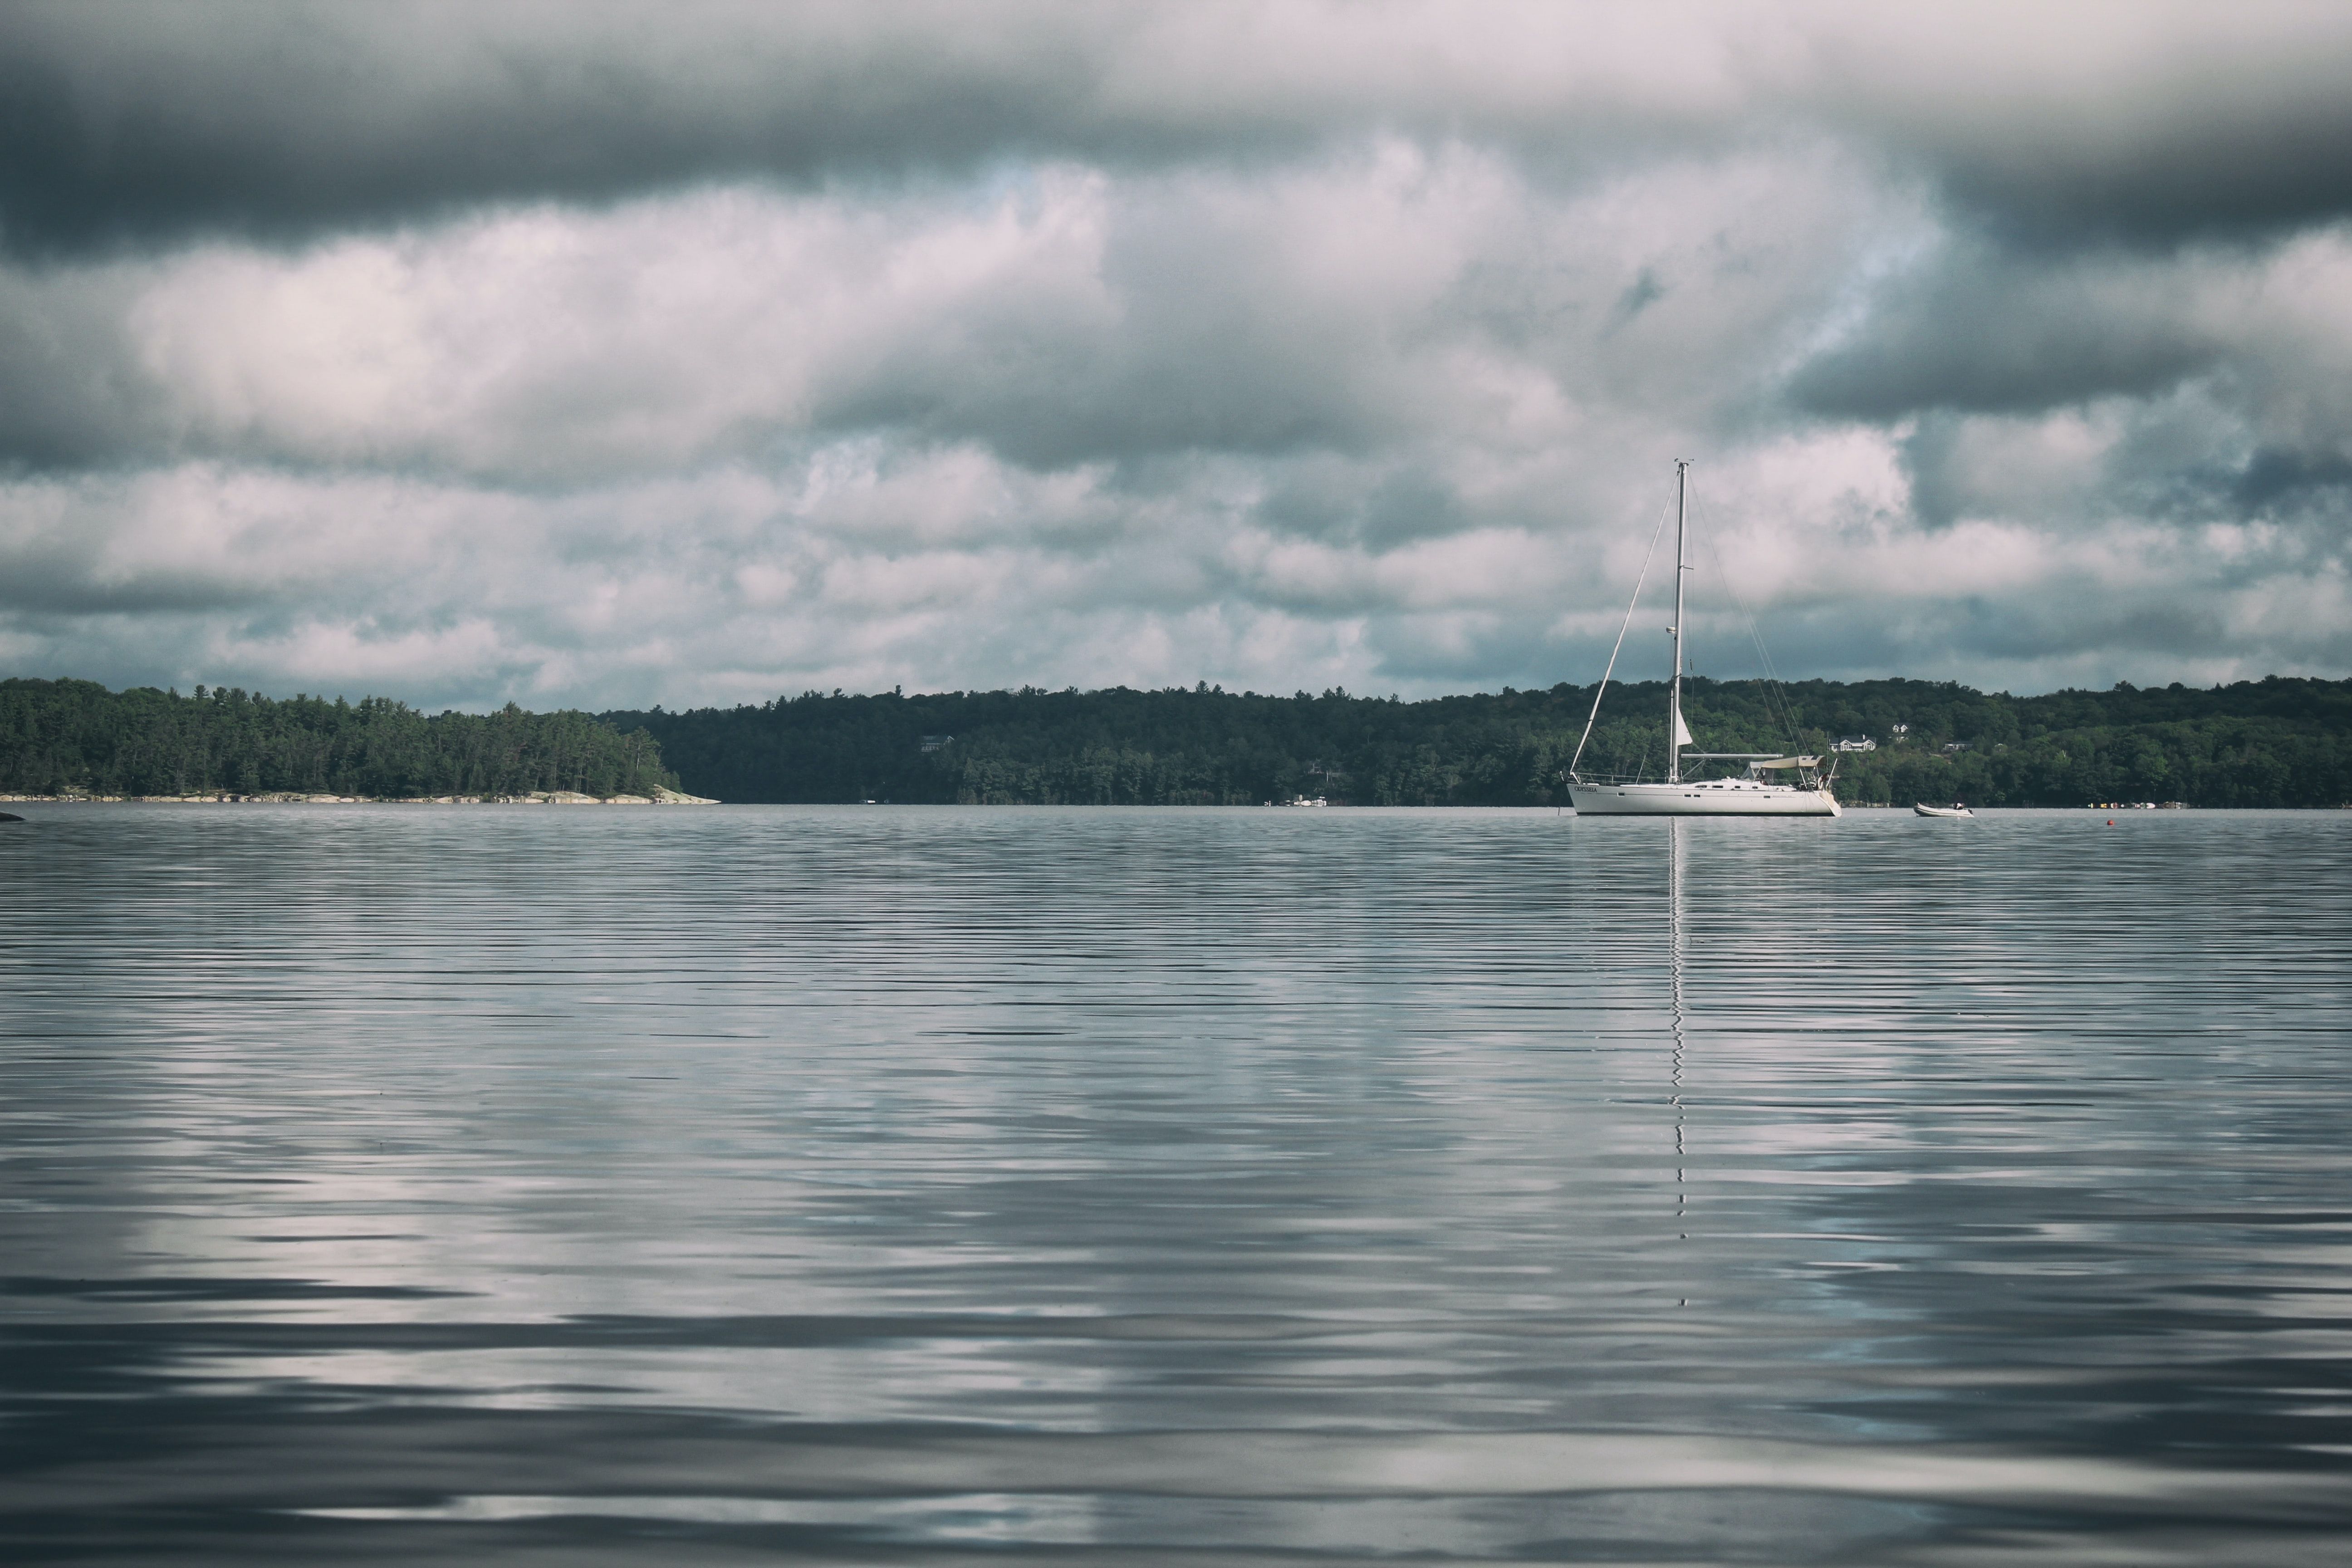 sail boat on body of water